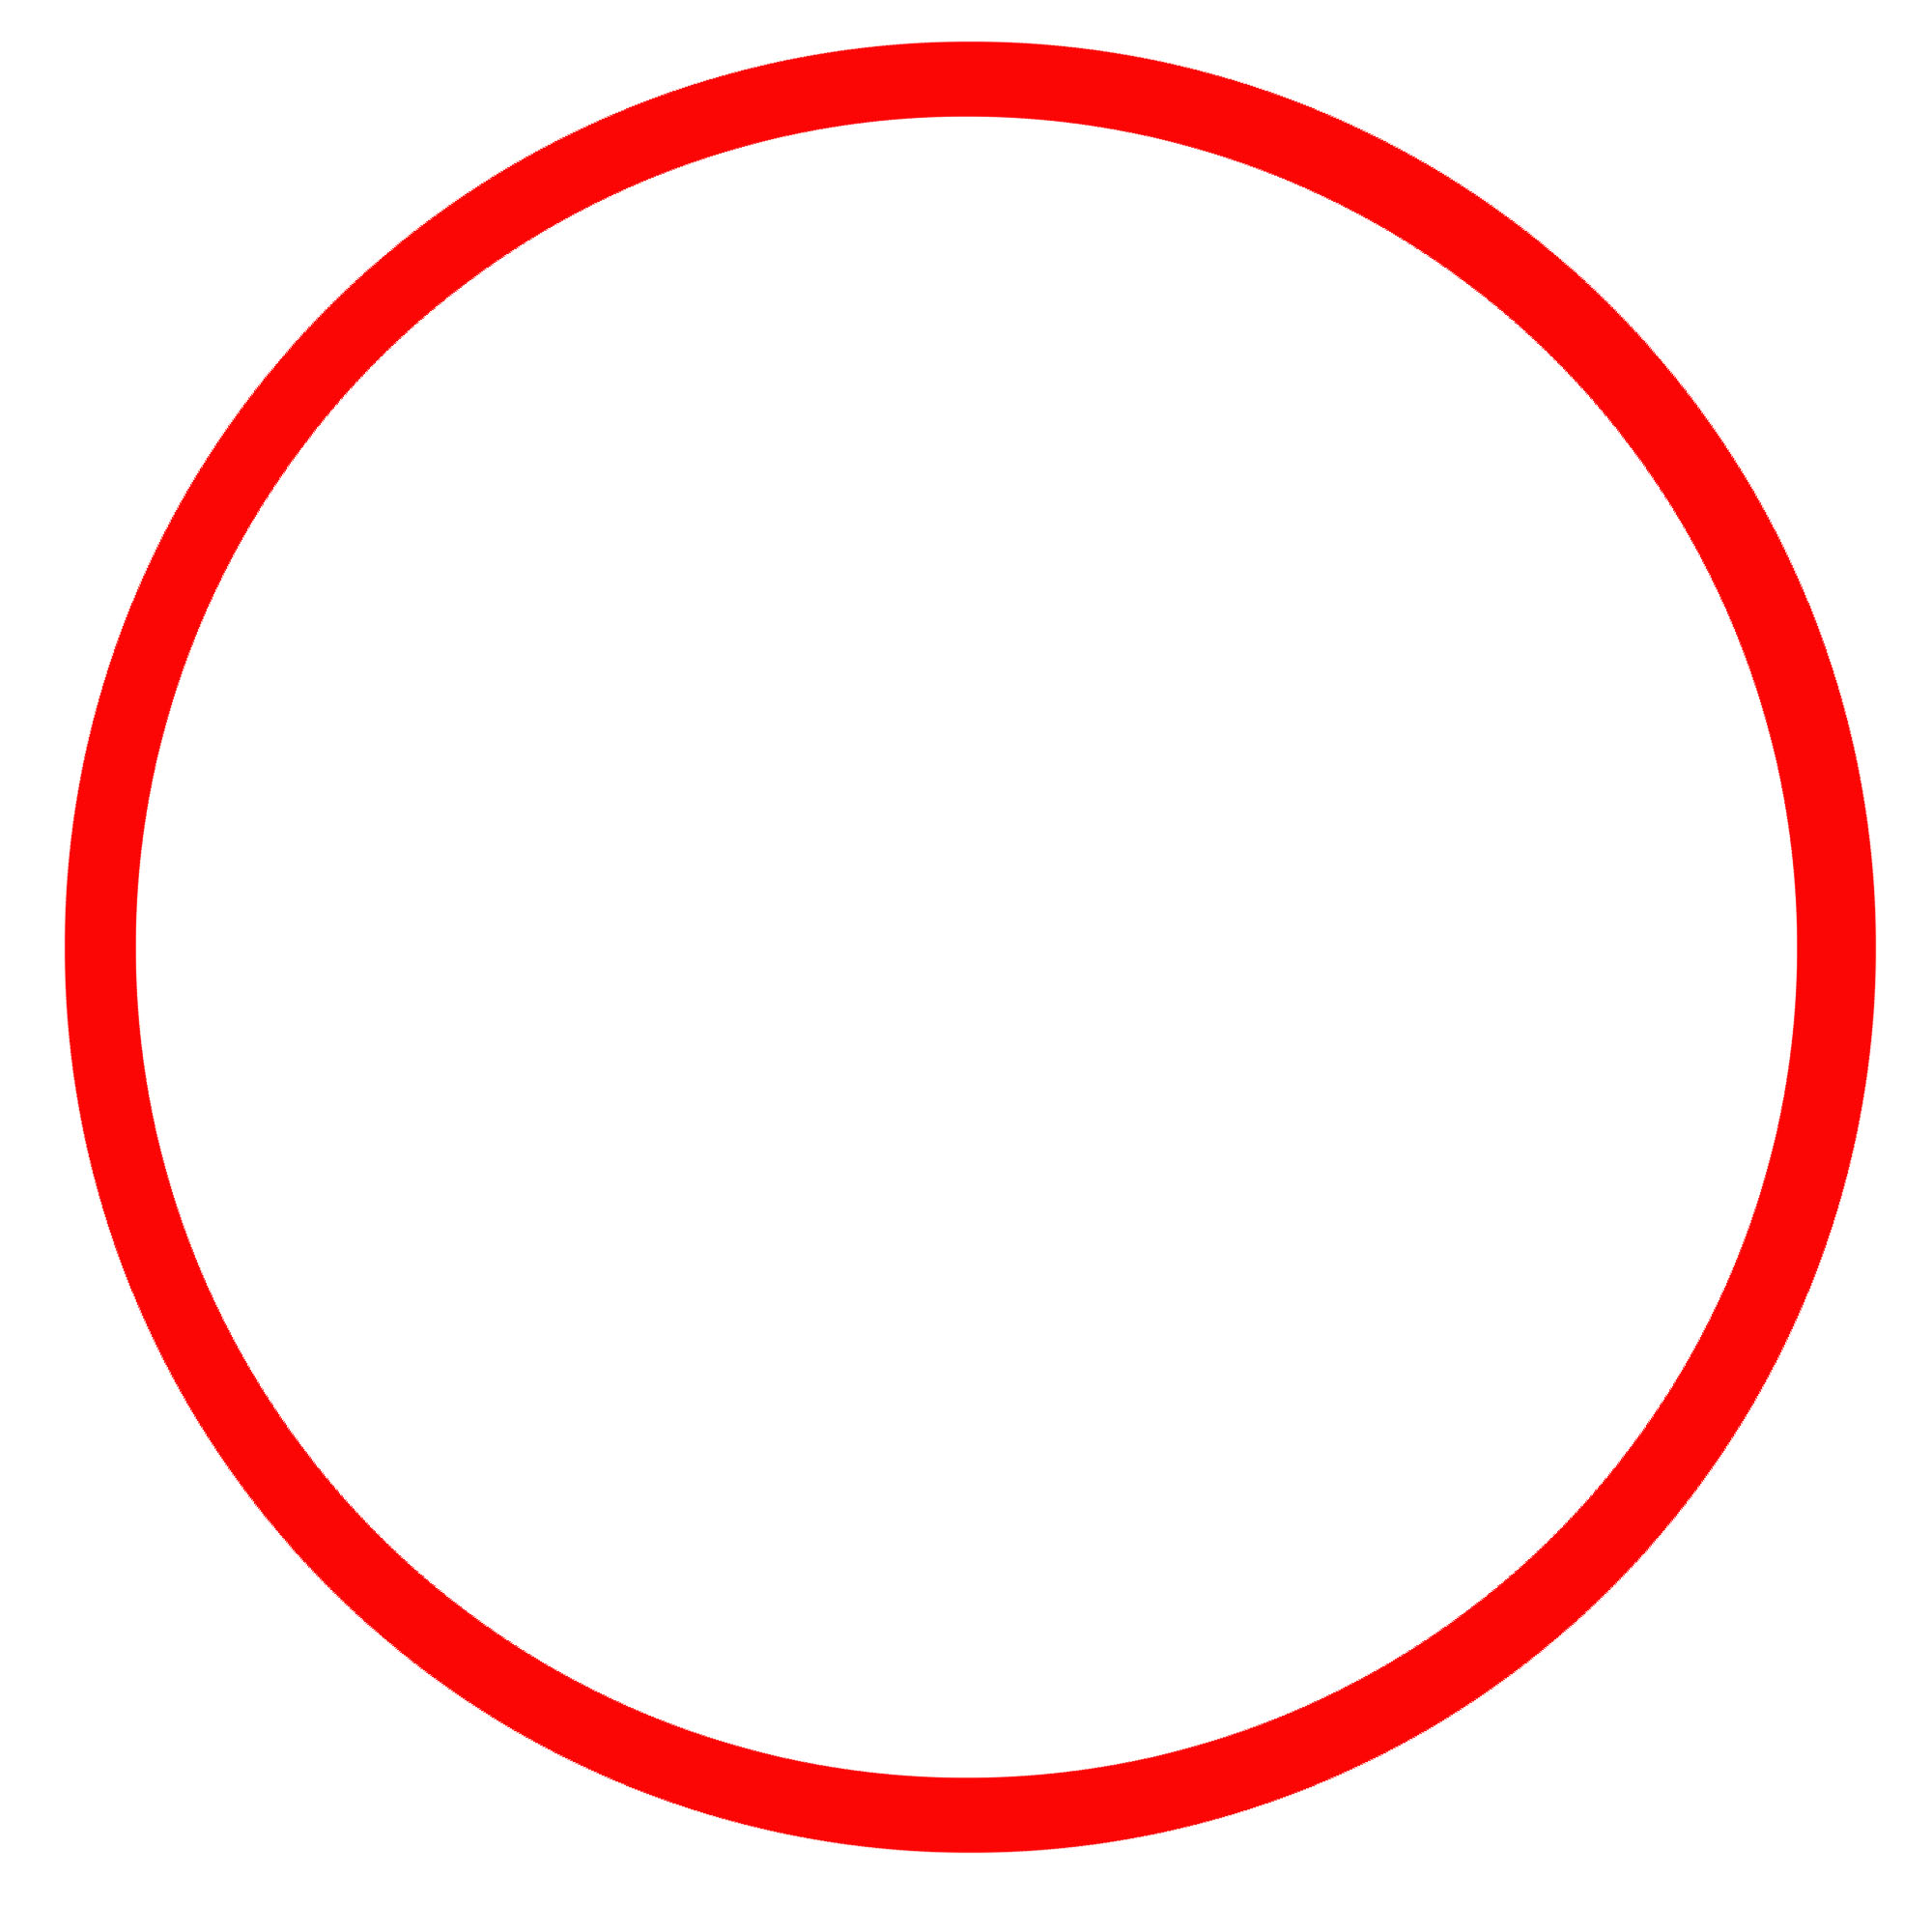 10 circled clipart vector library stock Red Circle Image | Free download best Red Circle Image on ClipArtMag.com vector library stock